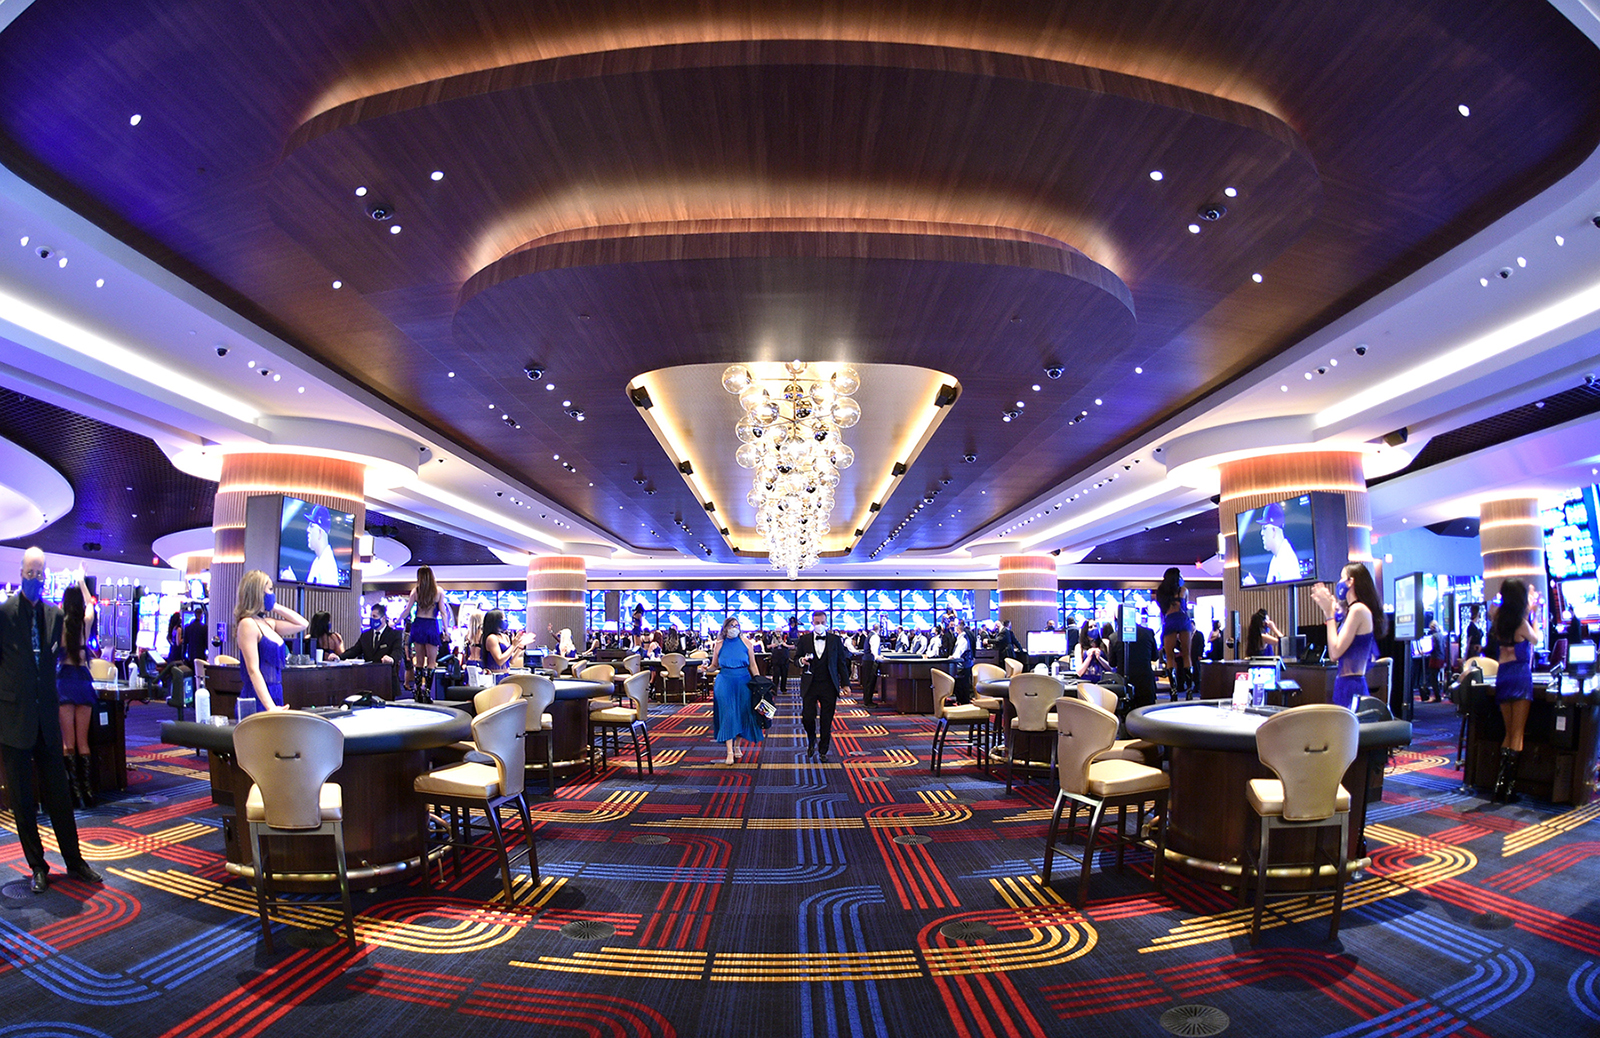 Guests attend the Circa Resort & Casino grand opening event in Las Vegas, Nevada